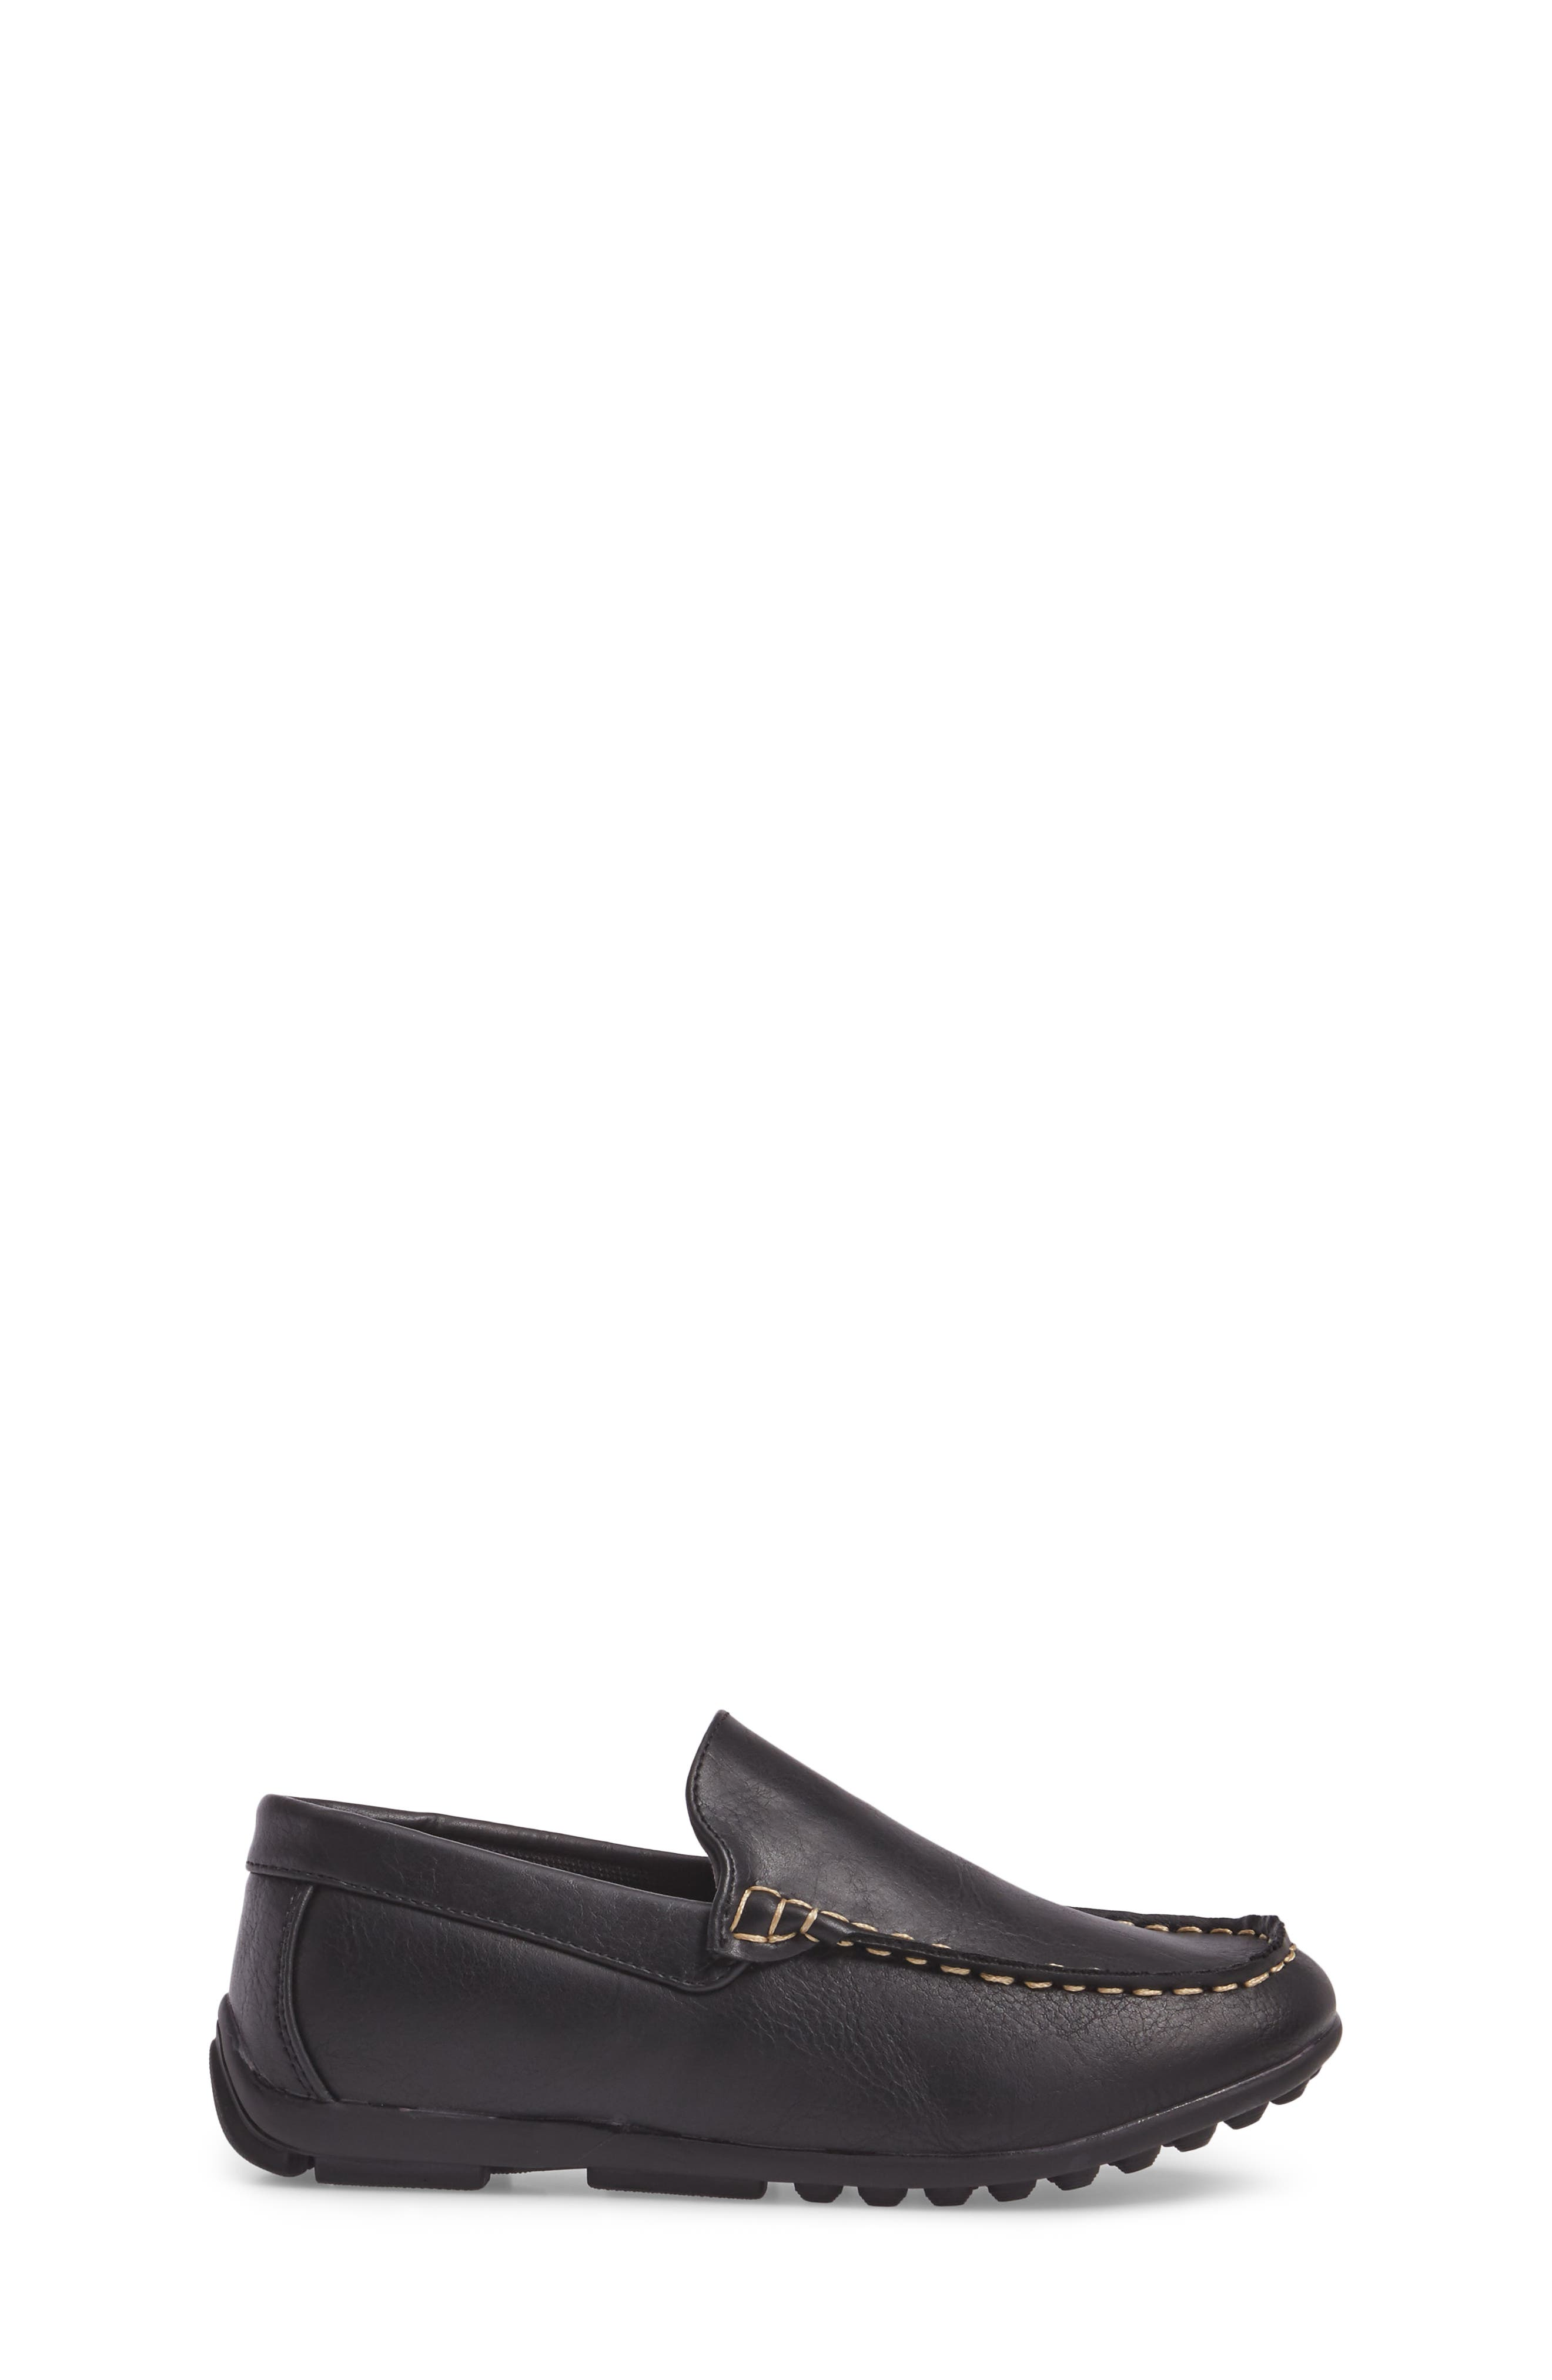 Compton Driving Loafer,                             Alternate thumbnail 3, color,                             BLACK